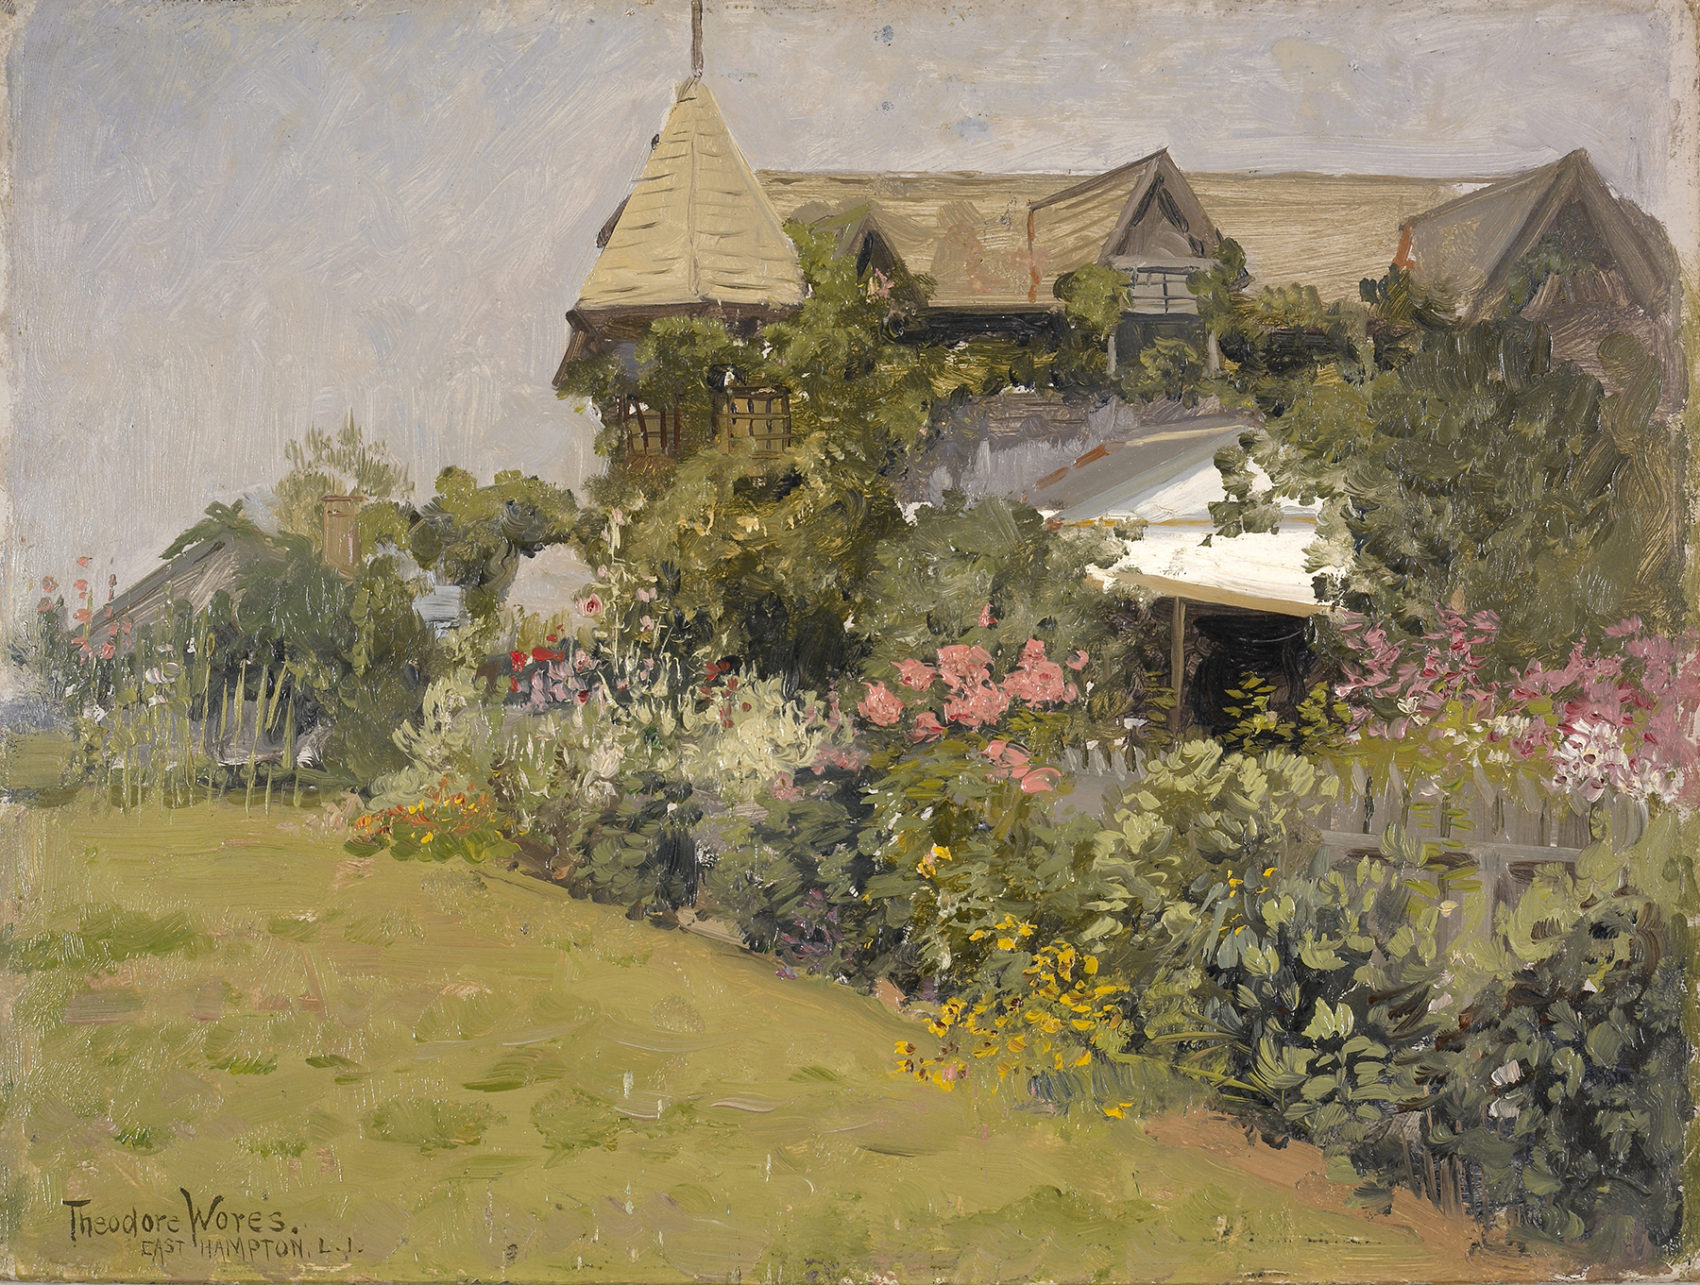 """Theodore Wores (1859-1939), """"Thomas Moran's House,"""" undated. Oil on board, 9 x 12 in. Gift of Dr. A. Jess Shenson in memory of Ronald G. Pisano."""